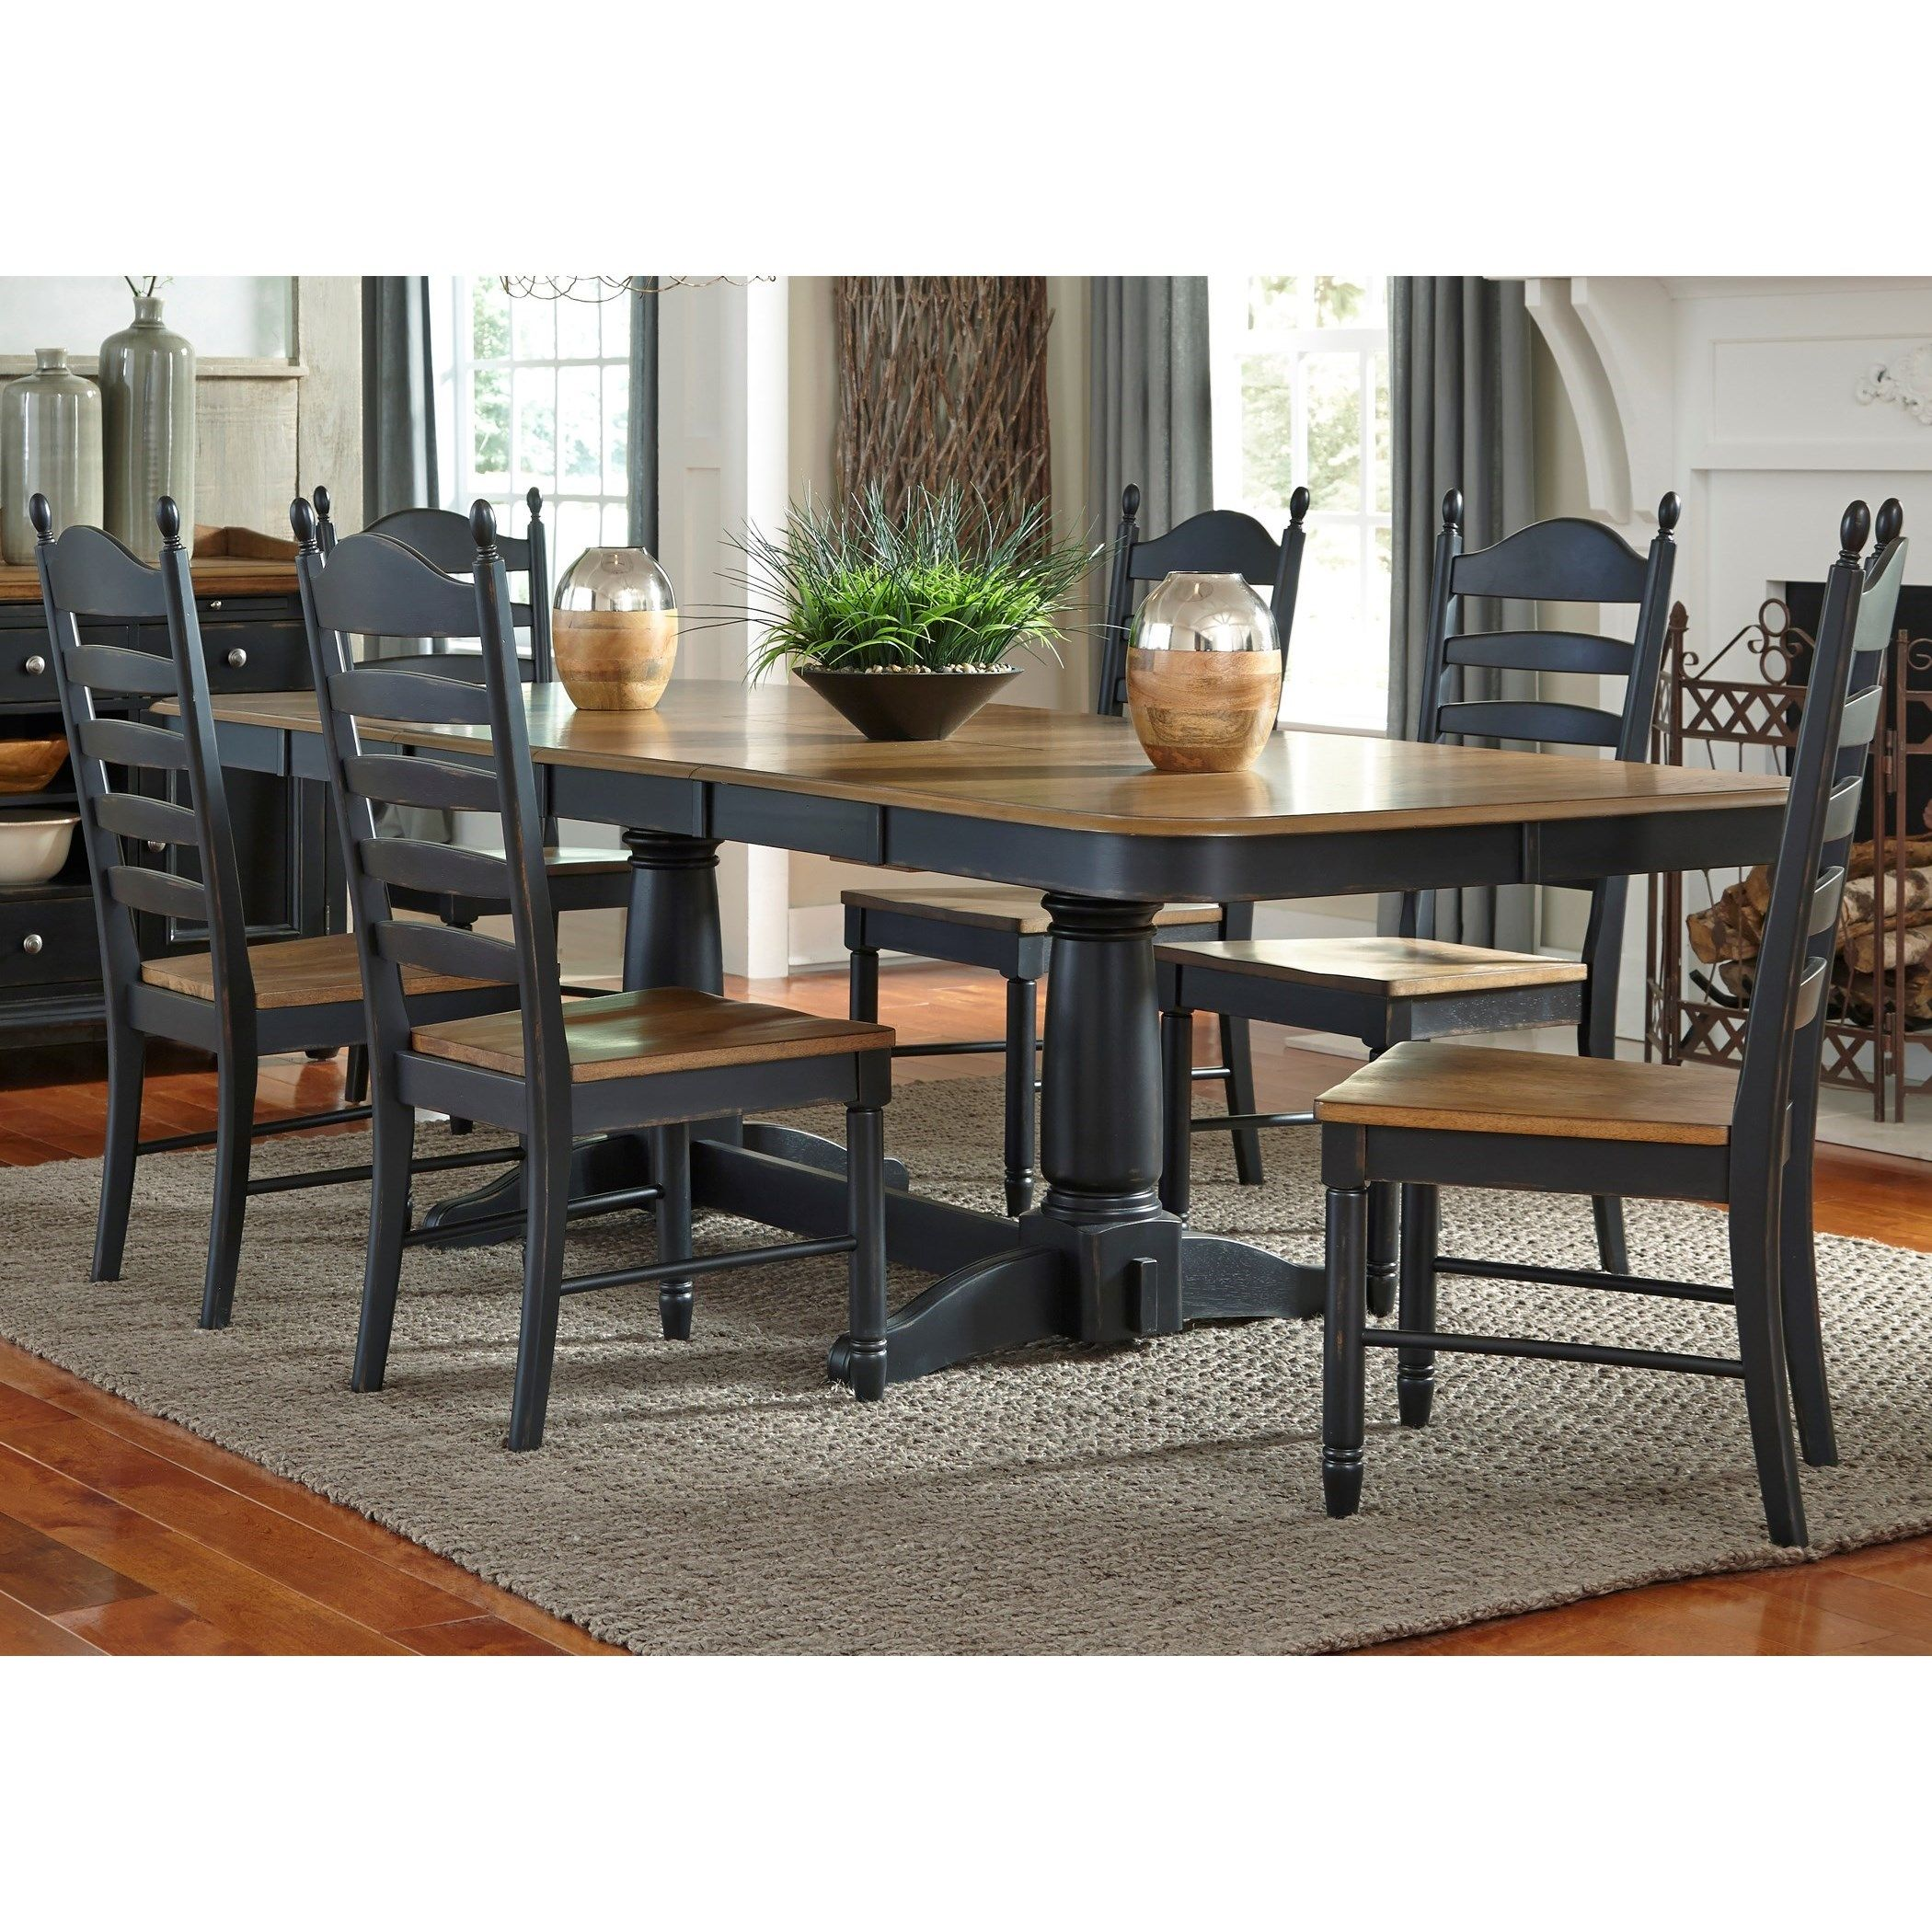 Pin By Michele Kasunich On Kitchen Table Liberty Furniture Extension Dining Table Furniture